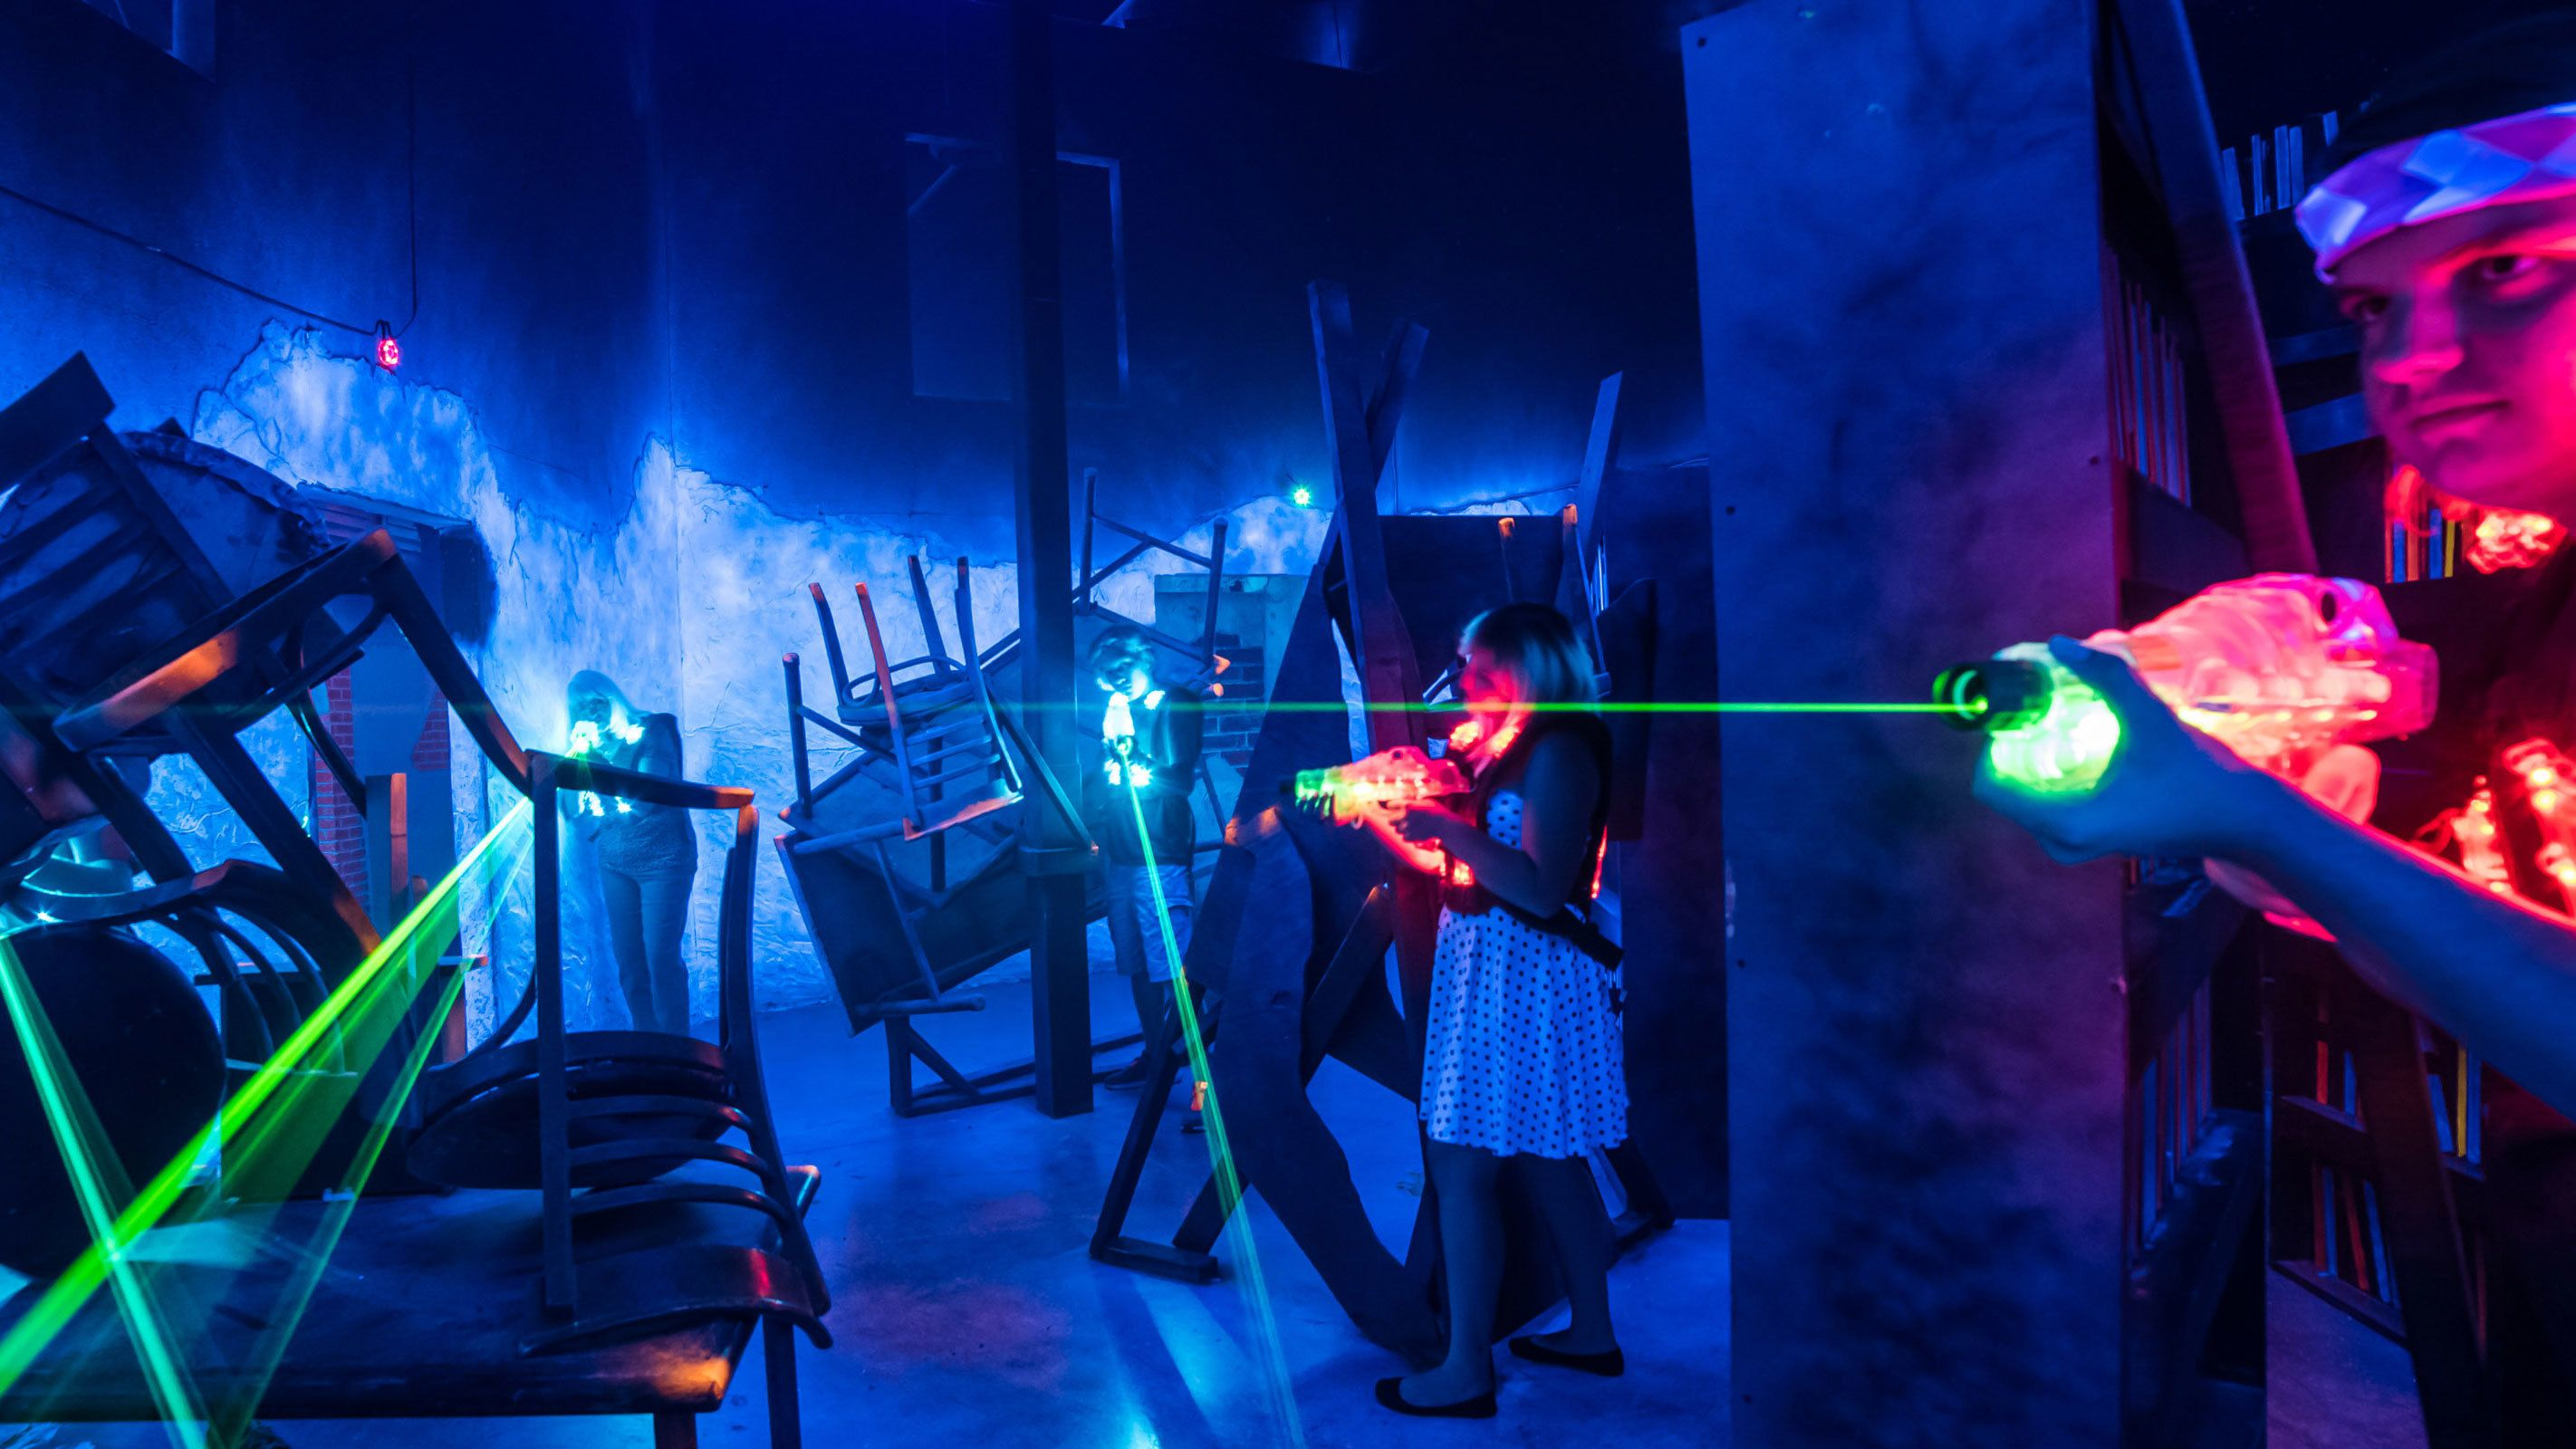 People firing laser guns during match at battleBLAST Laser Tag in Las Vegas